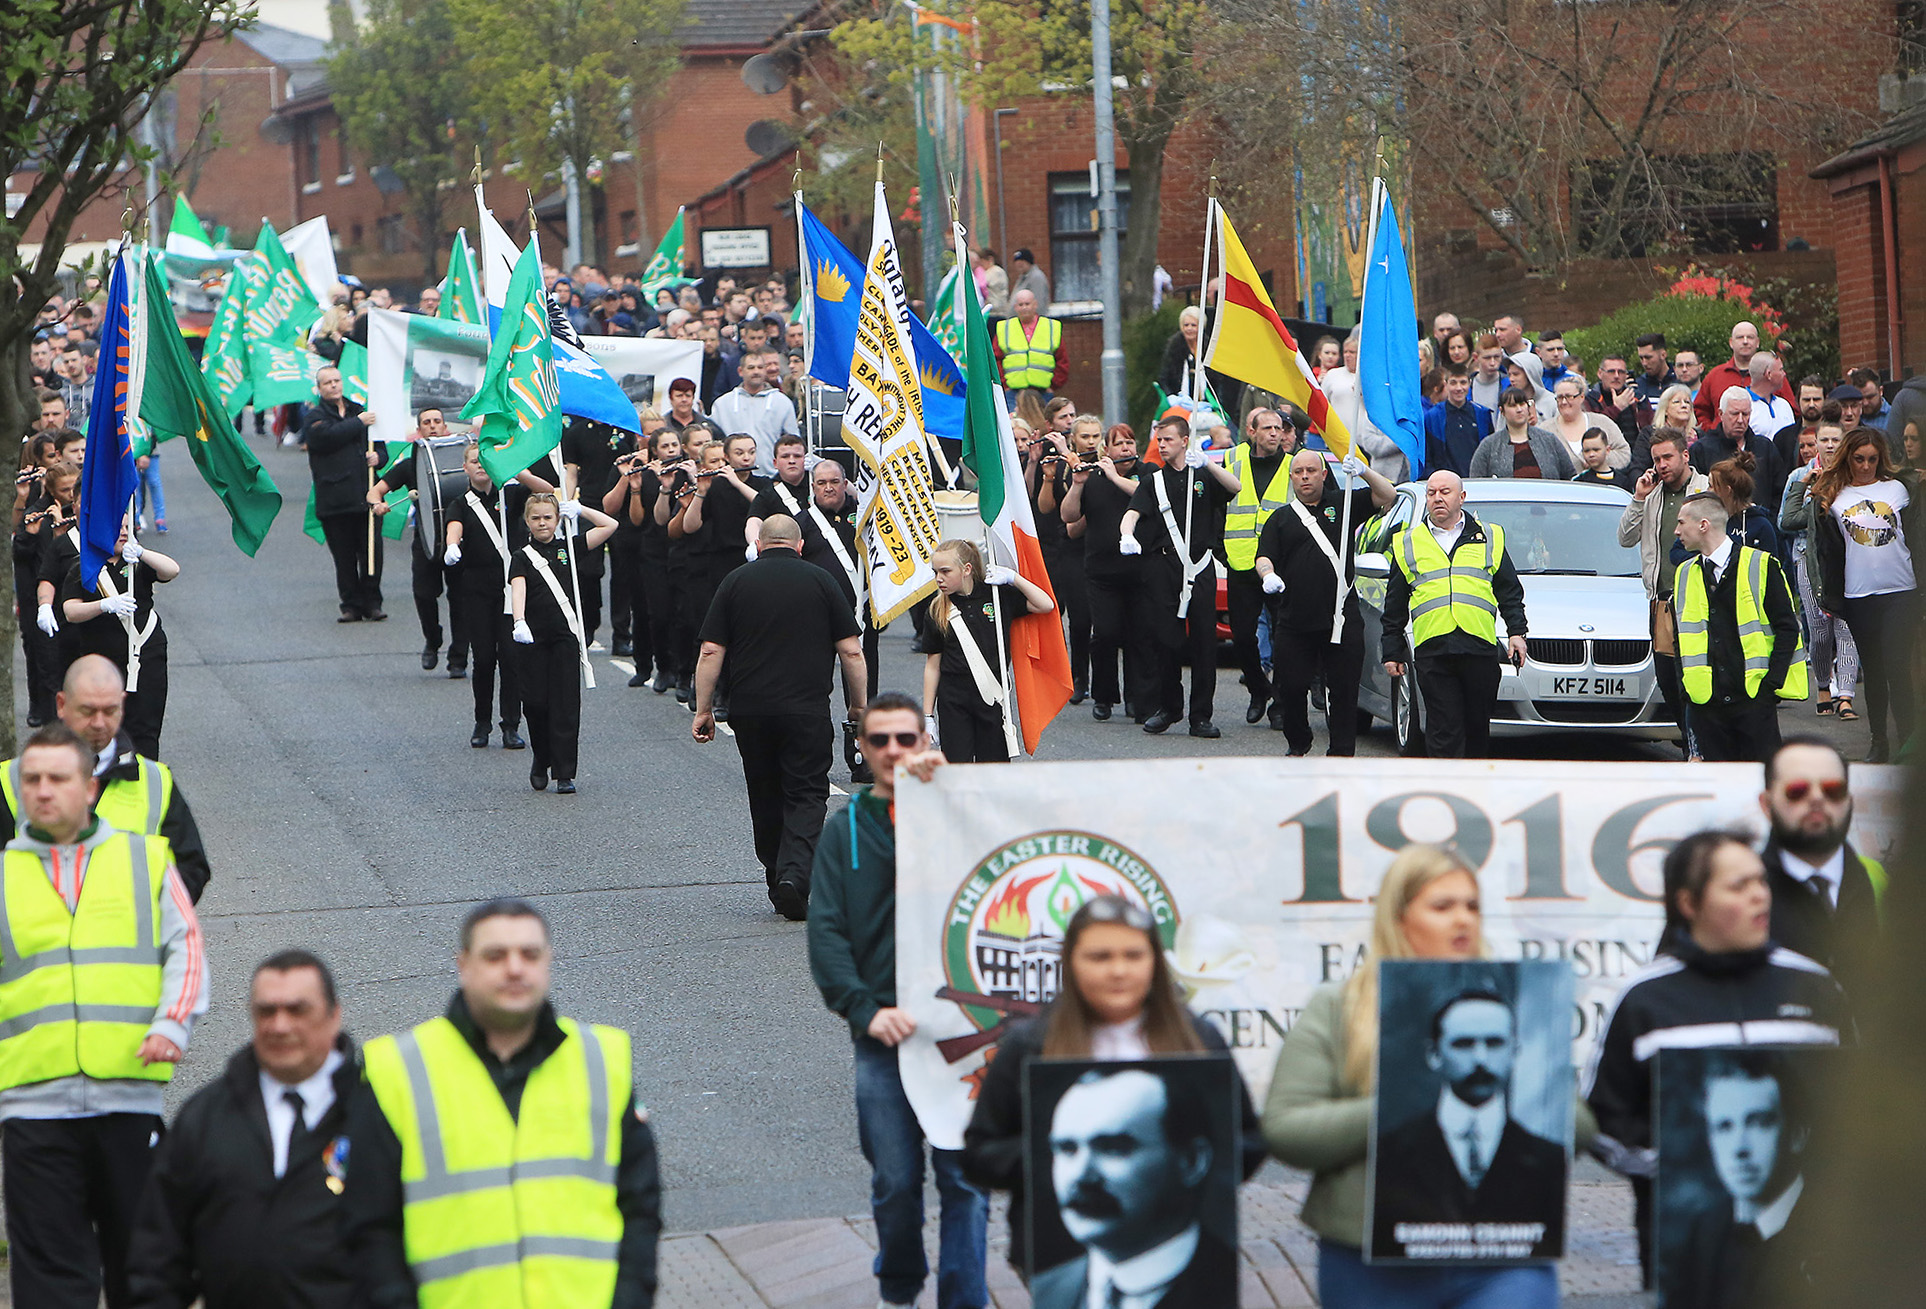 The peoples parade easter rising 0122404jc16